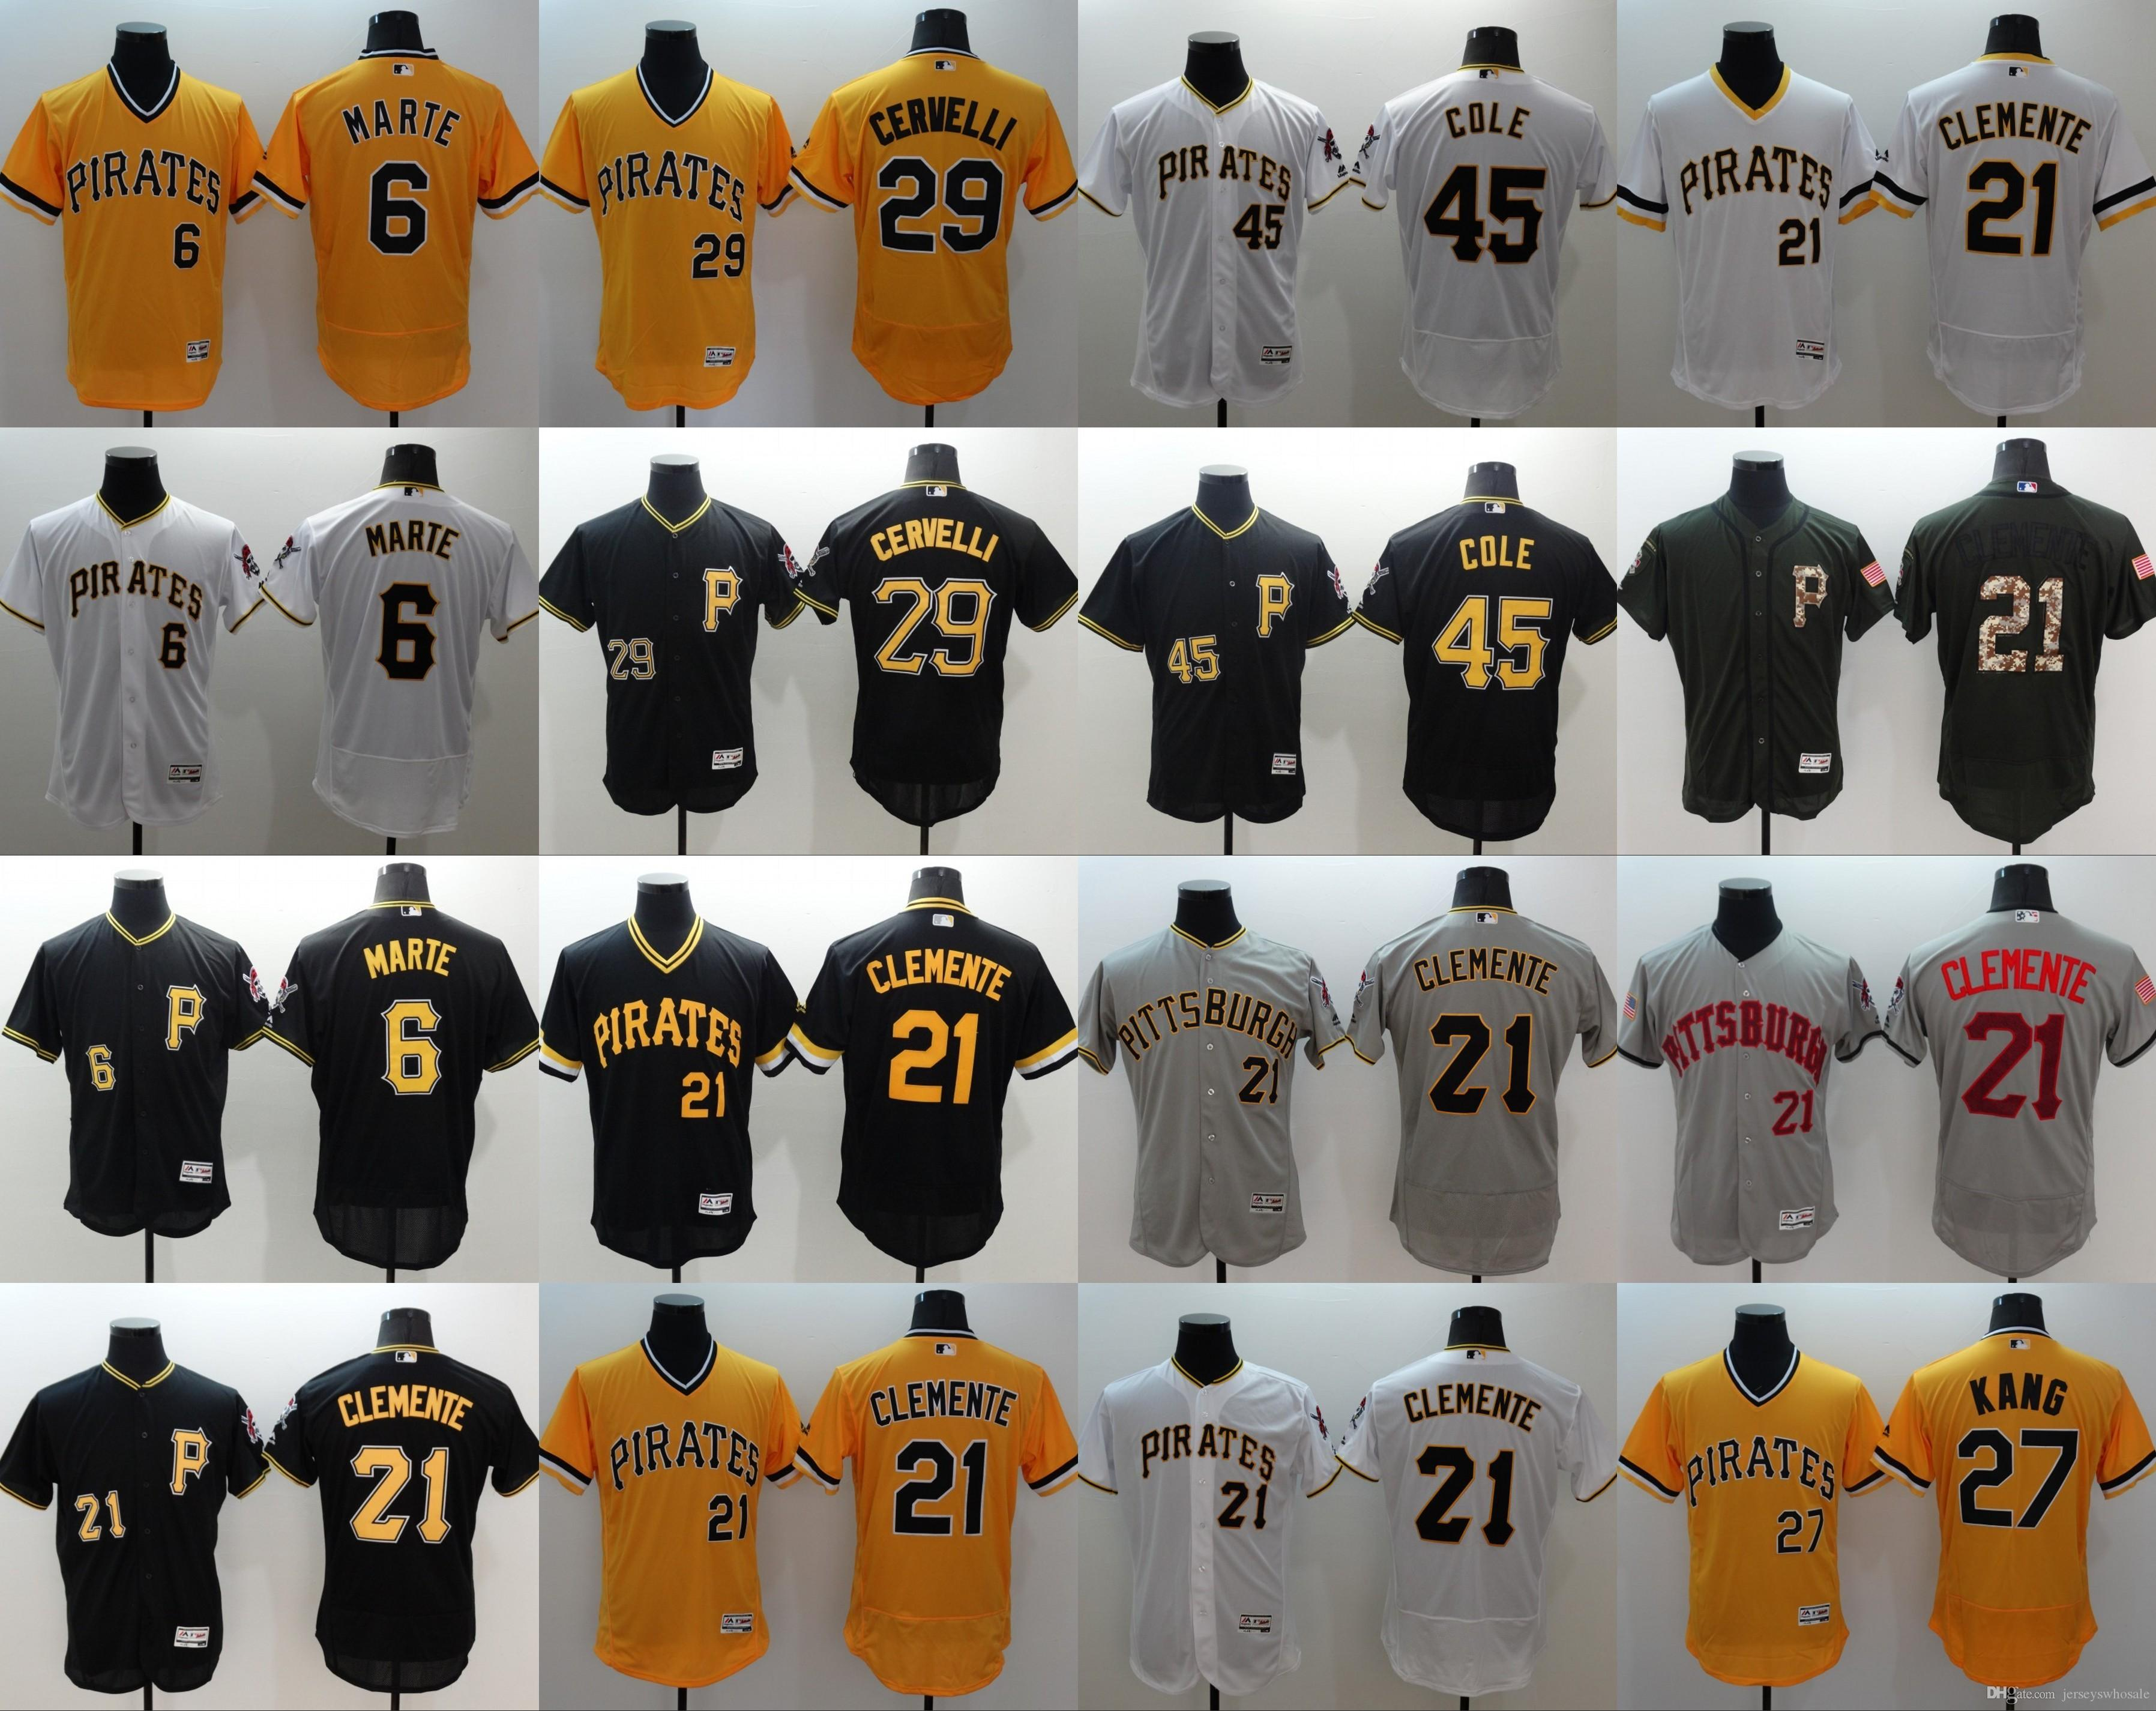 fe2b80a1d ... Authentic Collection Custom Jersey Mens Pittsburgh Pirates 21 Roberto  Clemente 45 Gerrit Cole 6 Starling Marte 29 Francisco Cervelli Flexbase ...